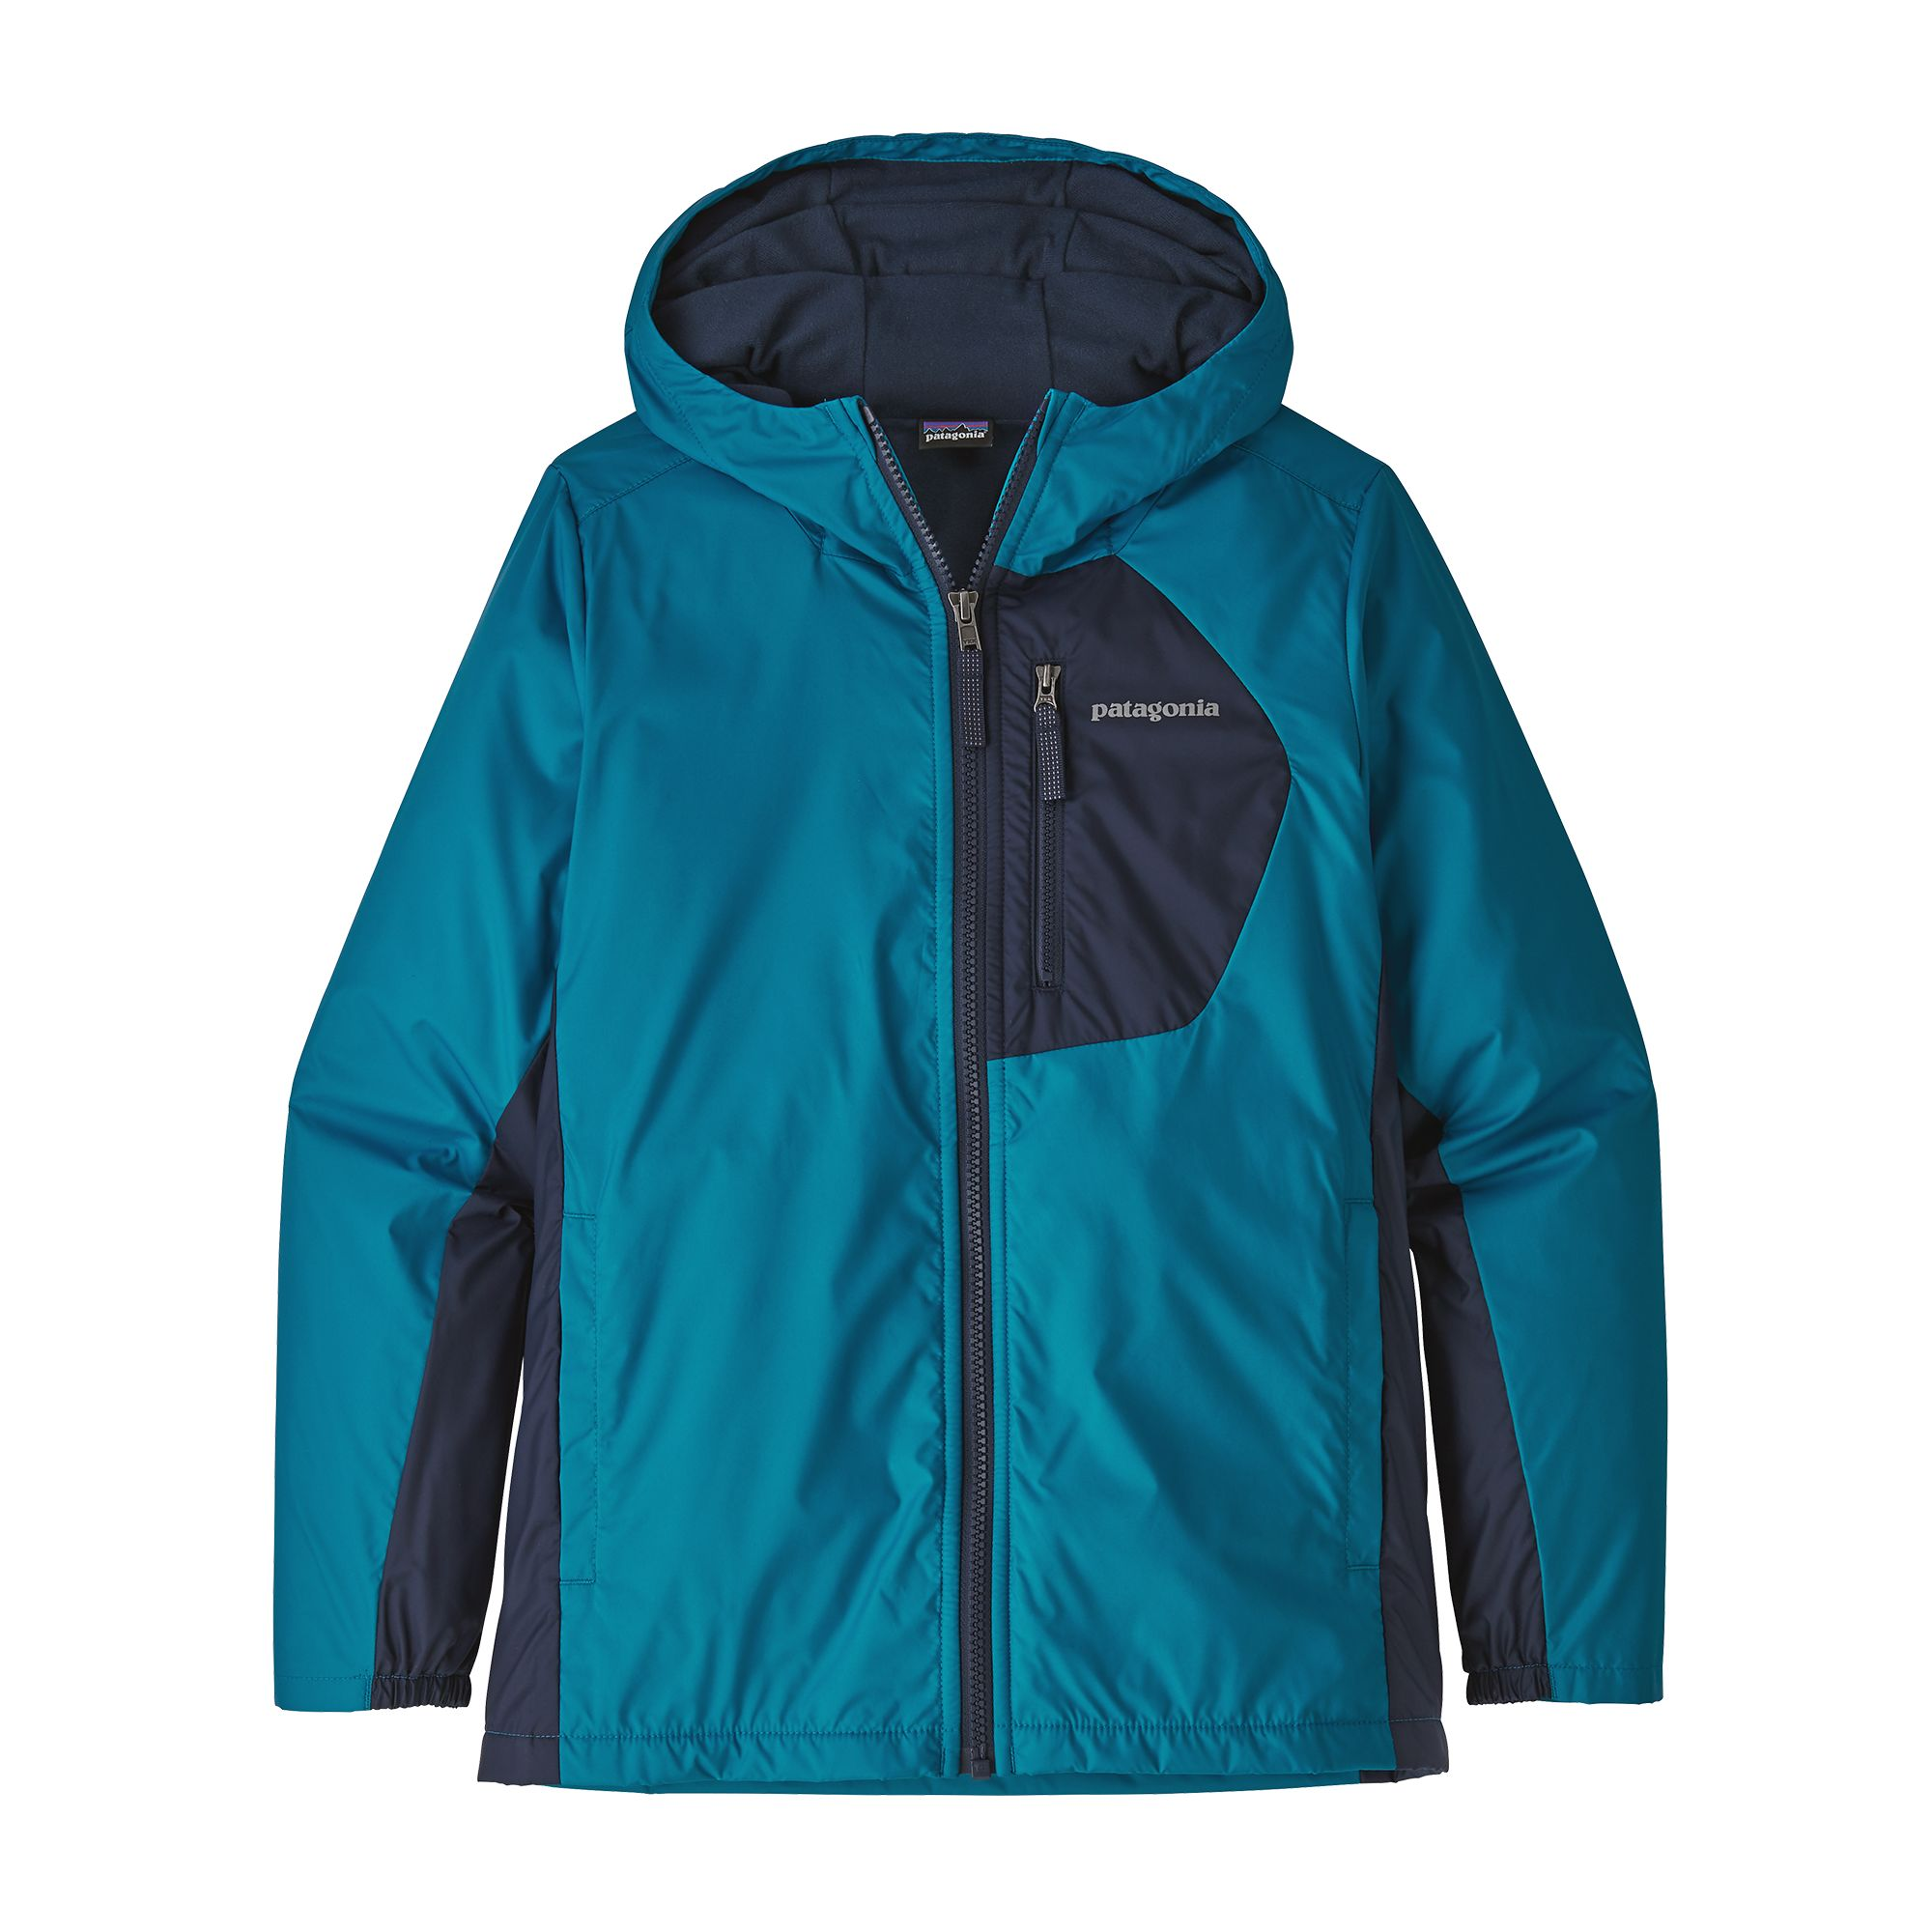 Patagonia Boys Quartsize Jacket